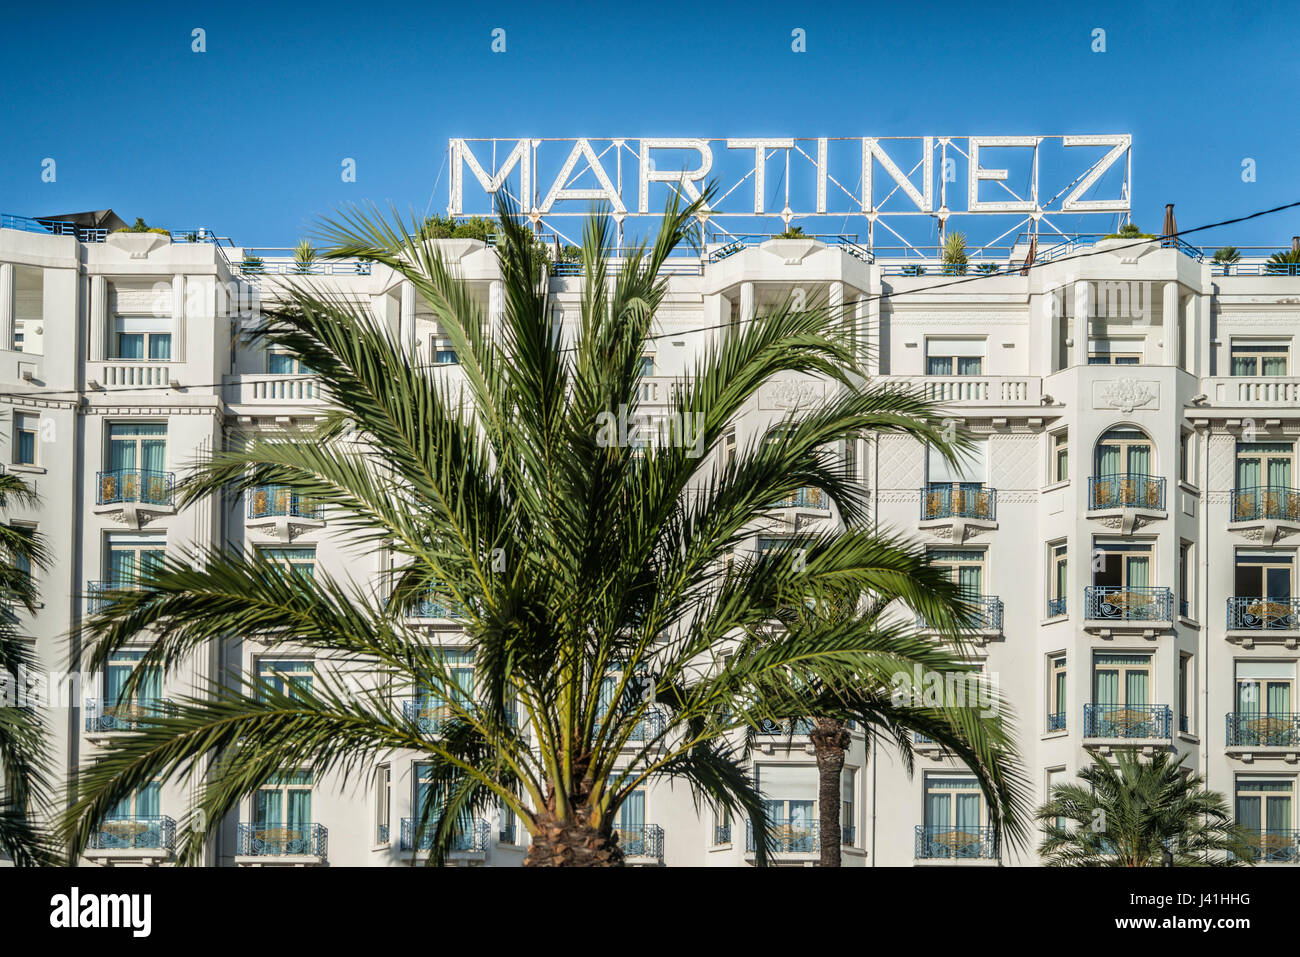 Facade of Hotel  Martinez, Cannes, Alpes-Maritimes, Cote d Azur, France Stock Photo